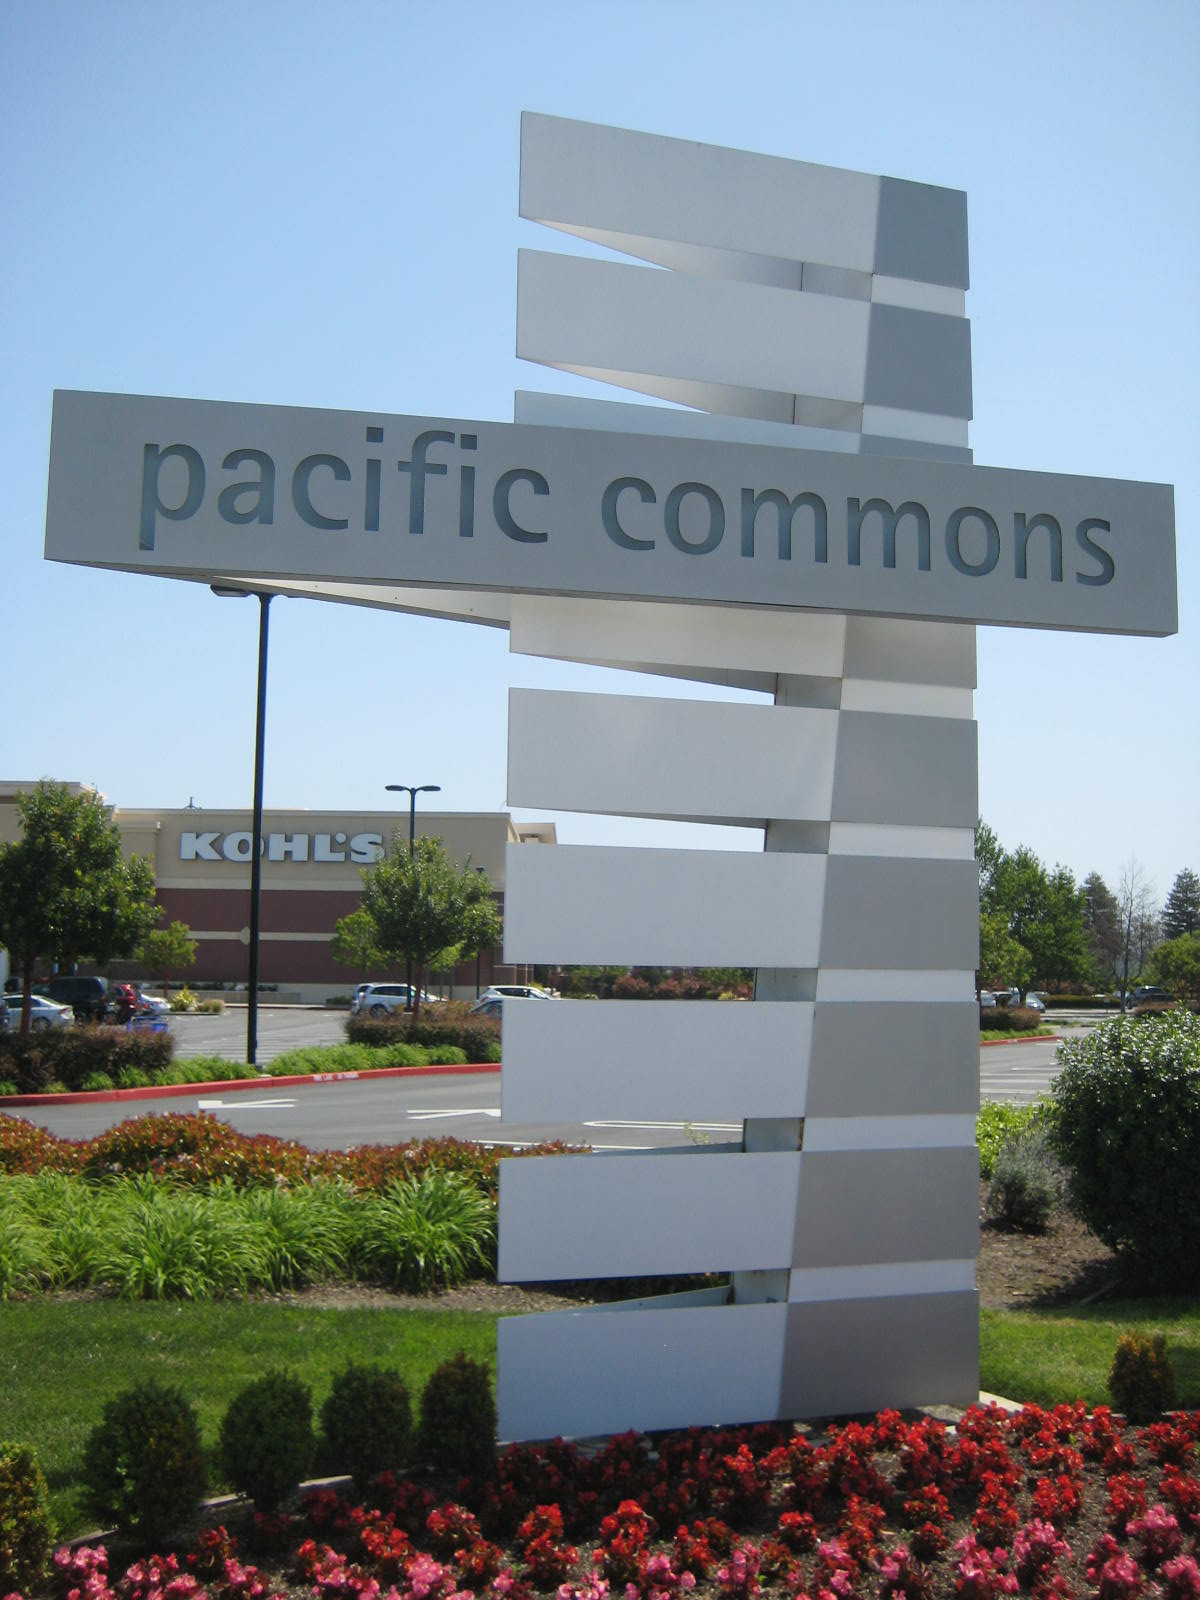 Pacific Commons Shopping Center Fremont California